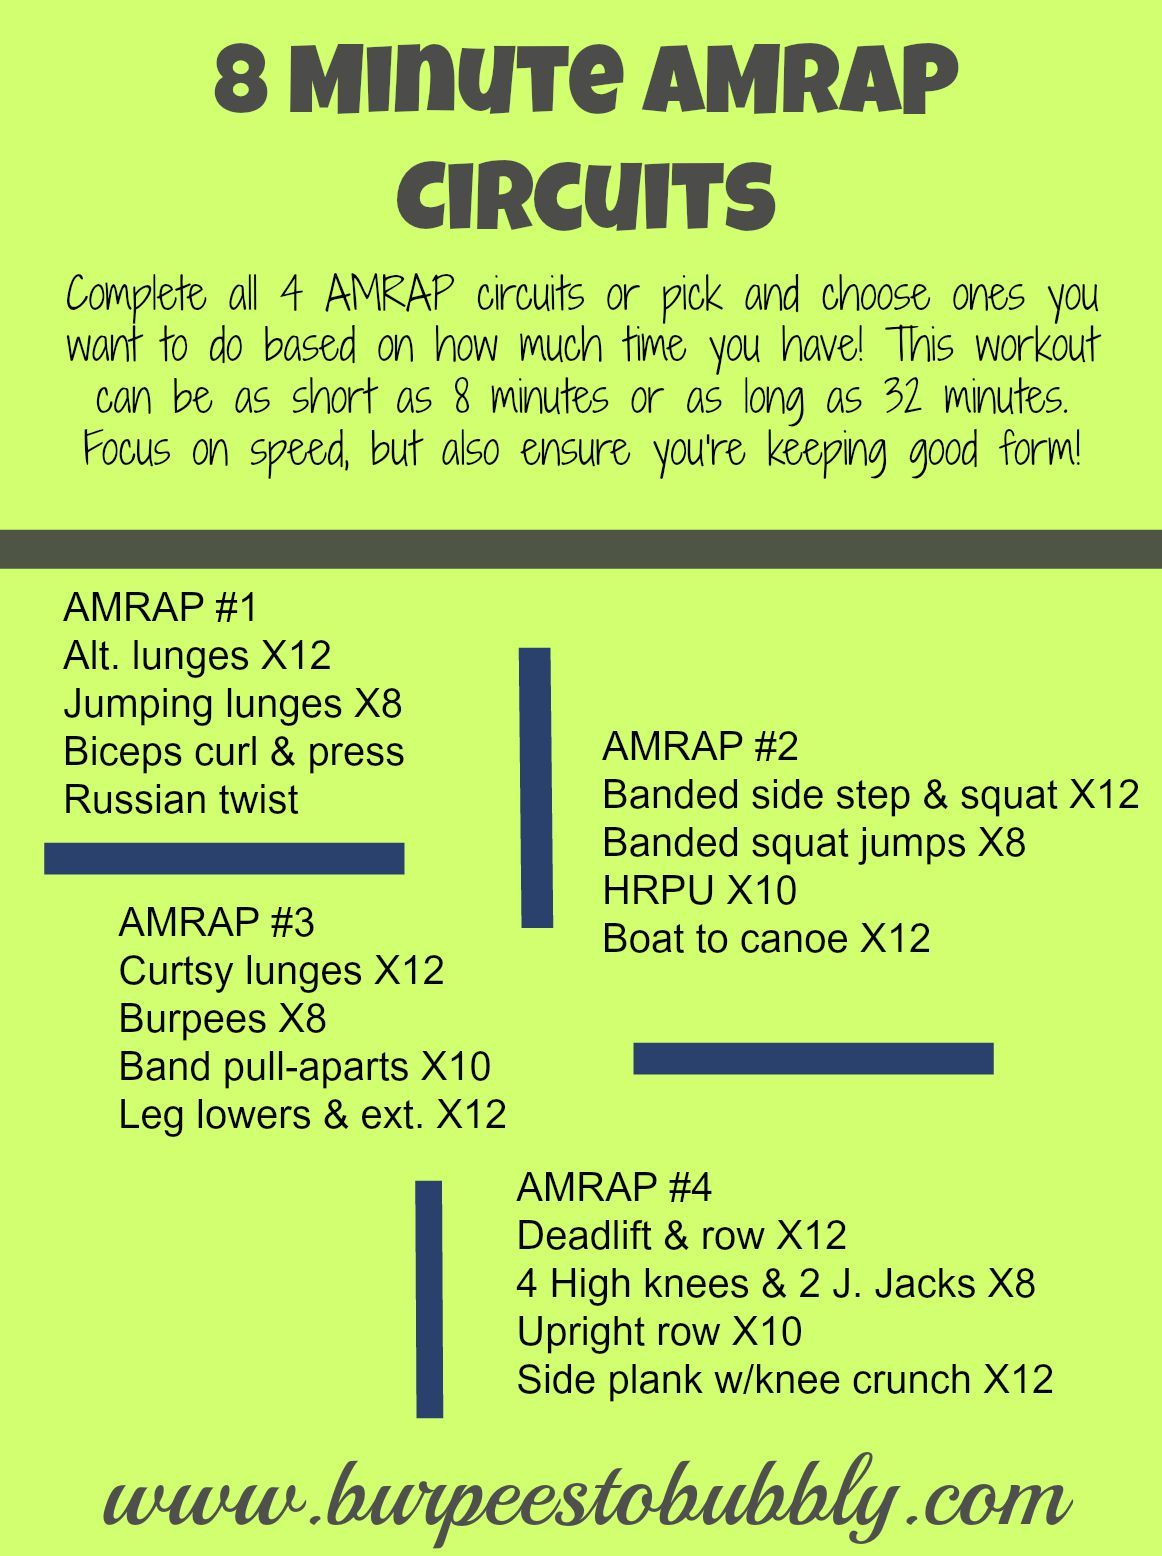 Wednesday Workout: 8 Minute AMRAP Circuits (Burpees to ...